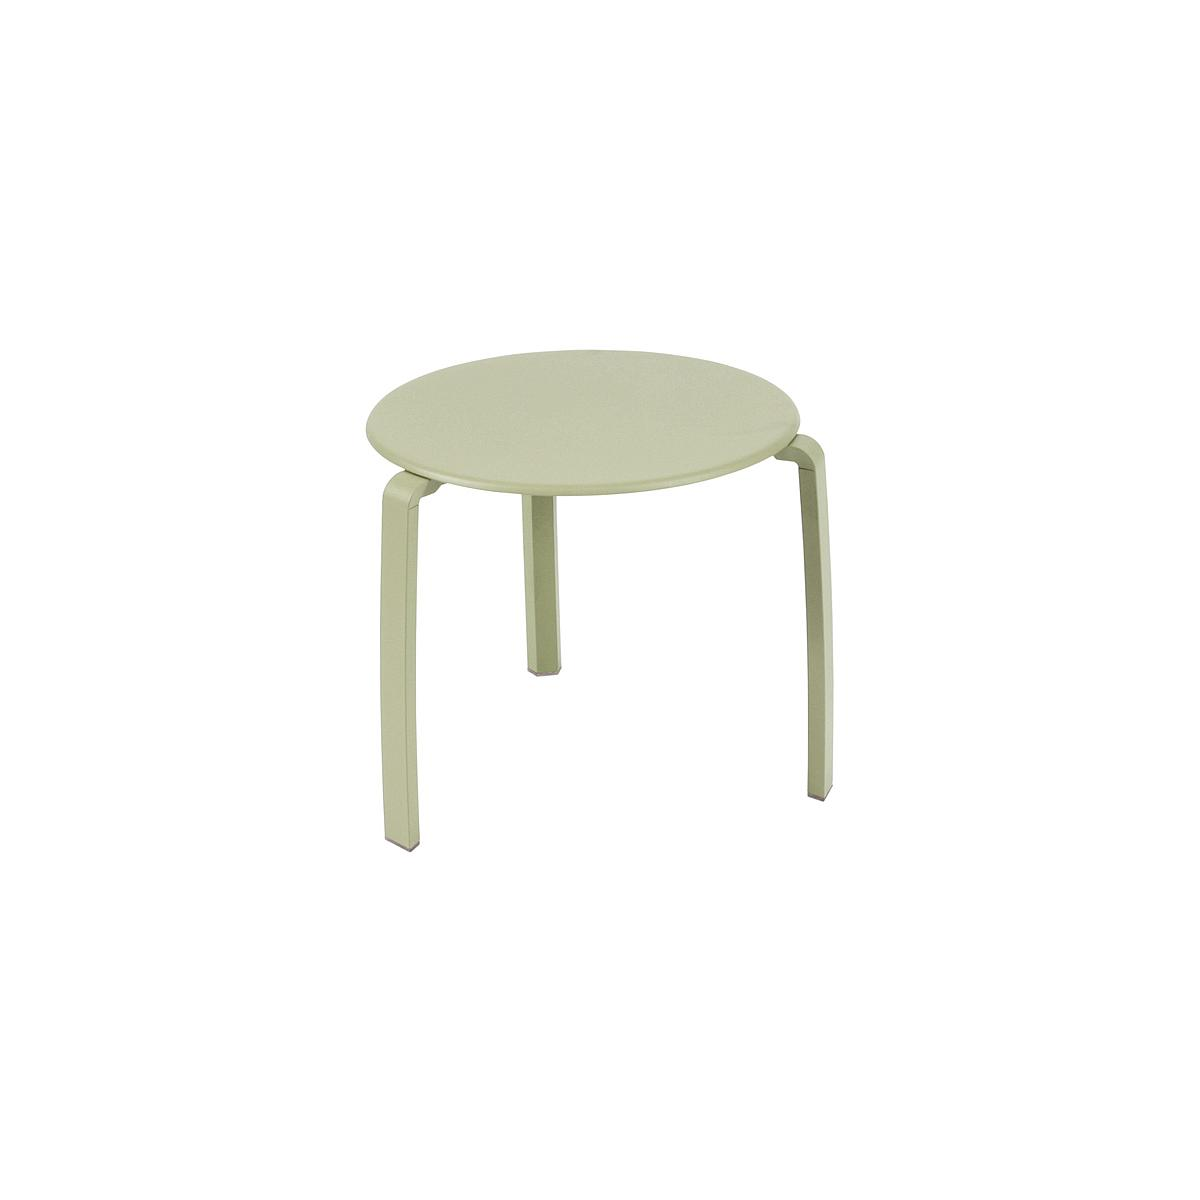 ALIZE by Fermob Table basse Vert tilleul